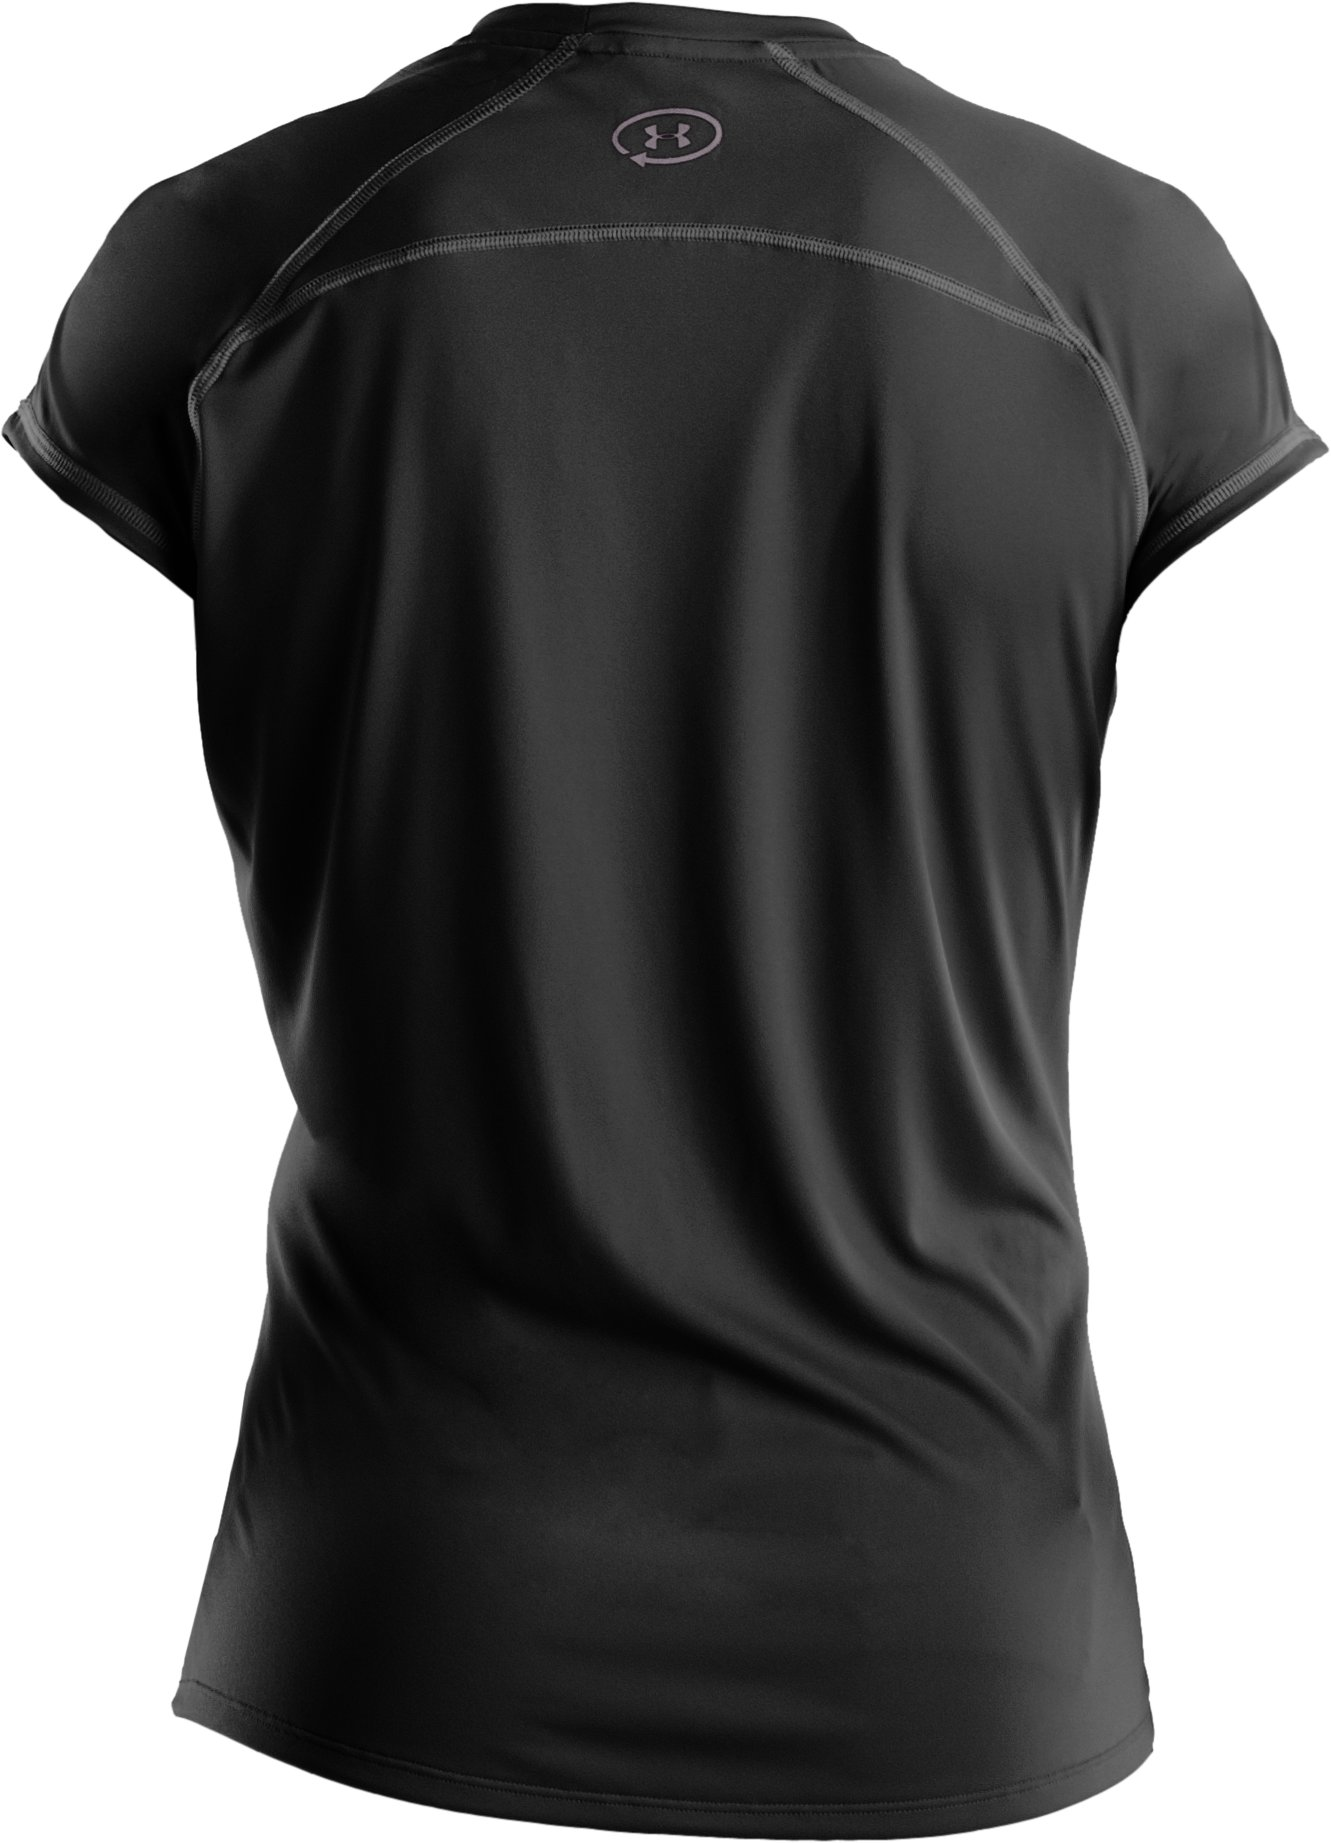 Women's UA Catalyst Short Sleeve T-Shirt, Black